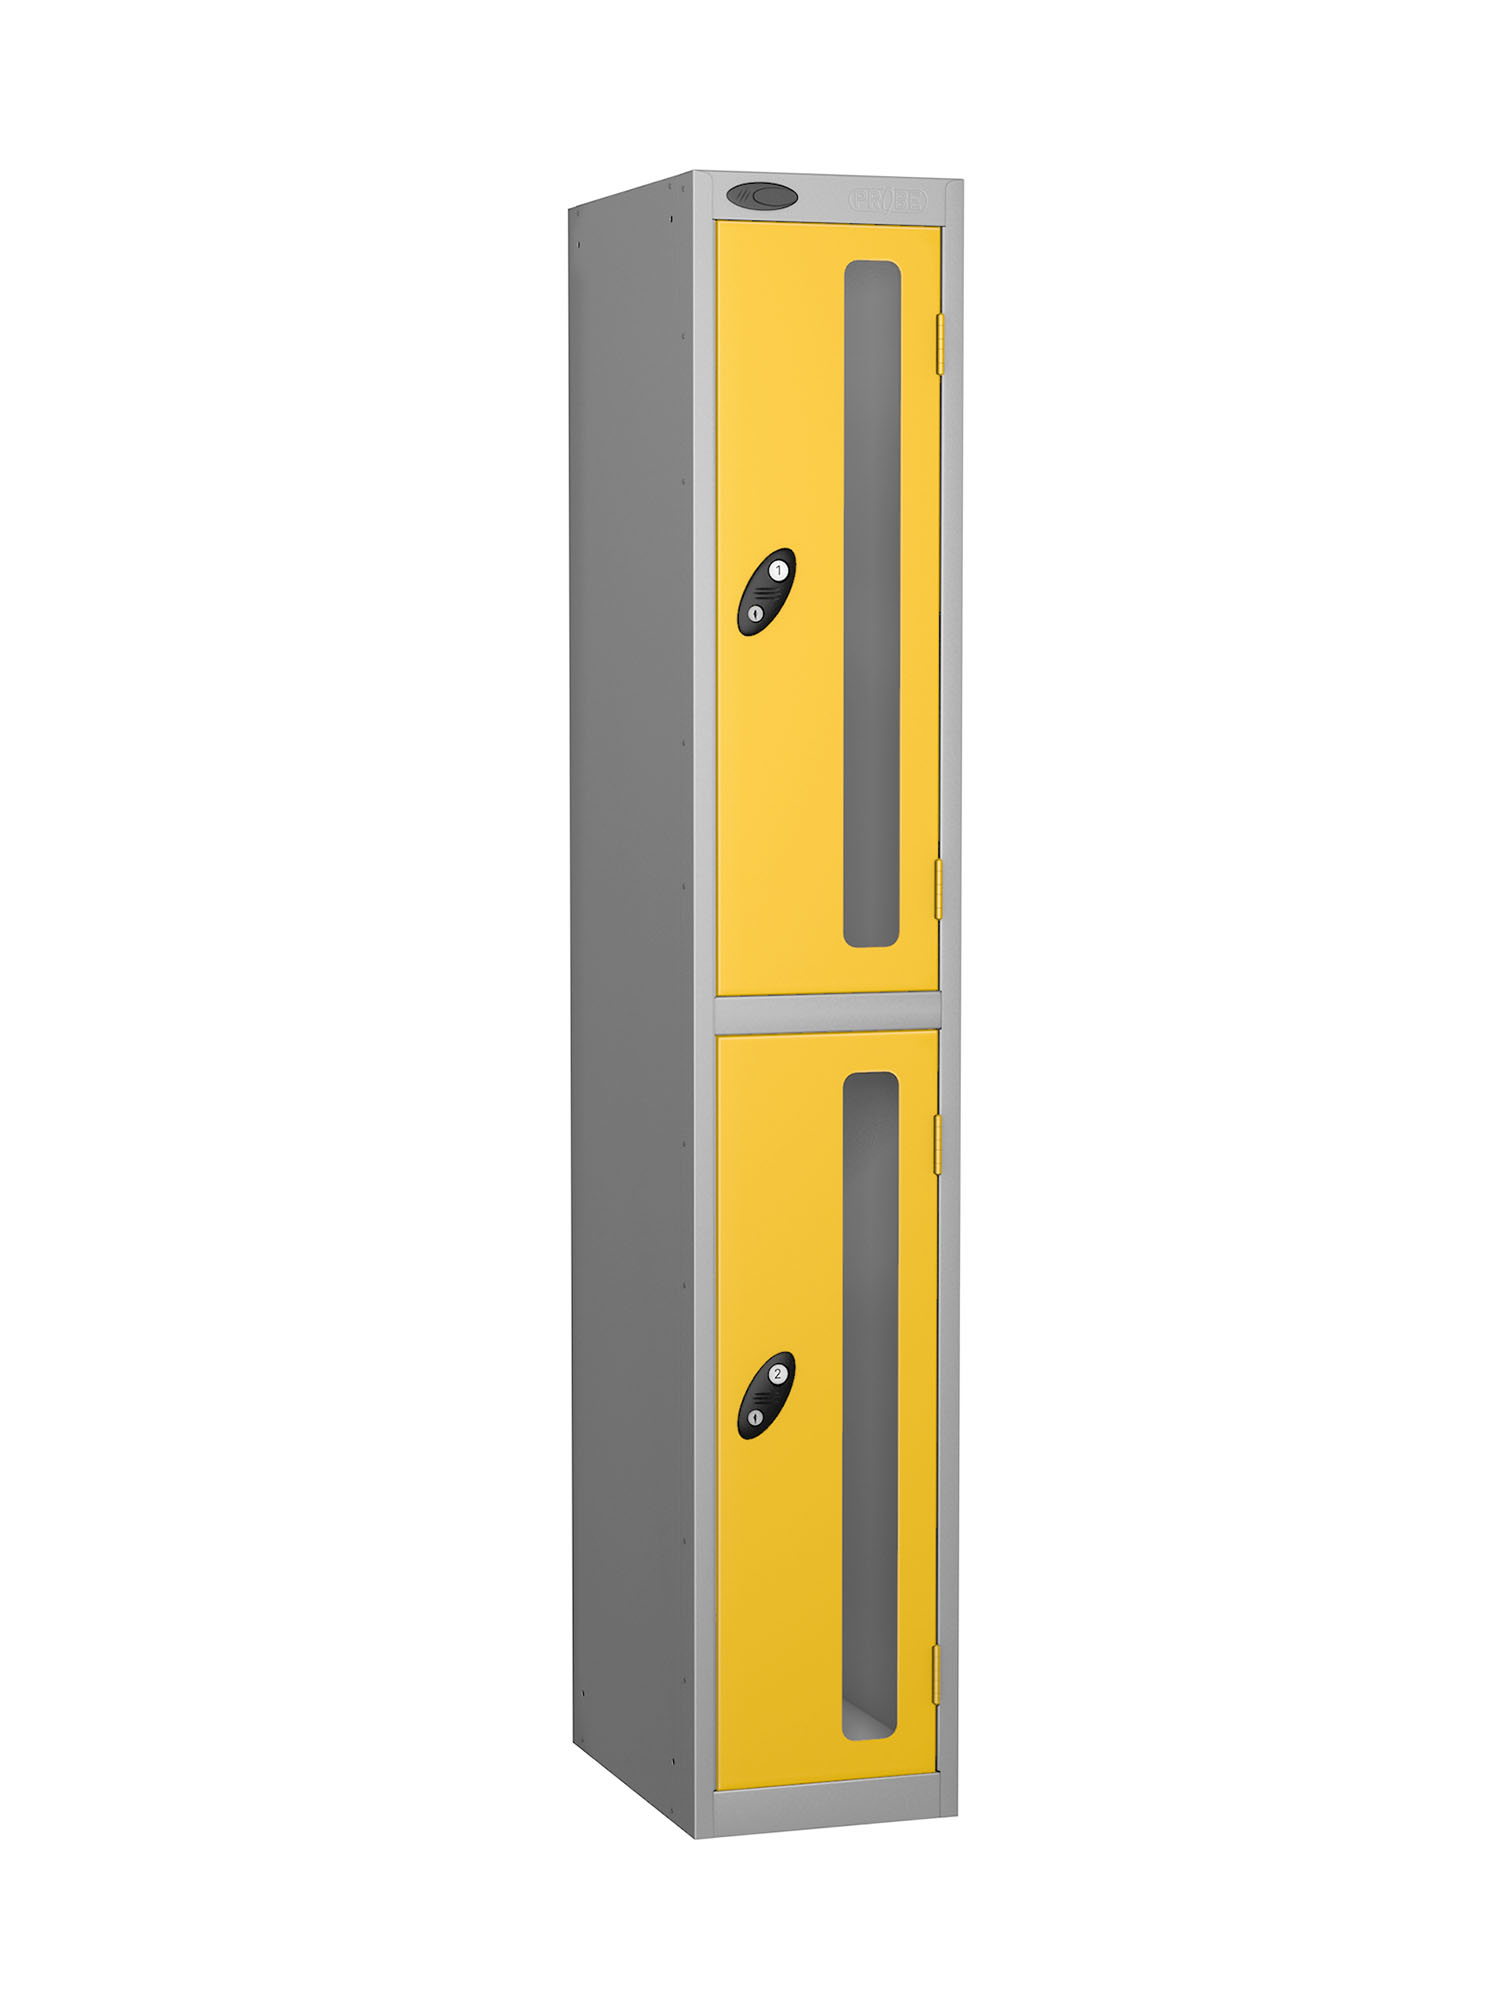 Probe 2 doors vision panel anti-stock theft locker yellow